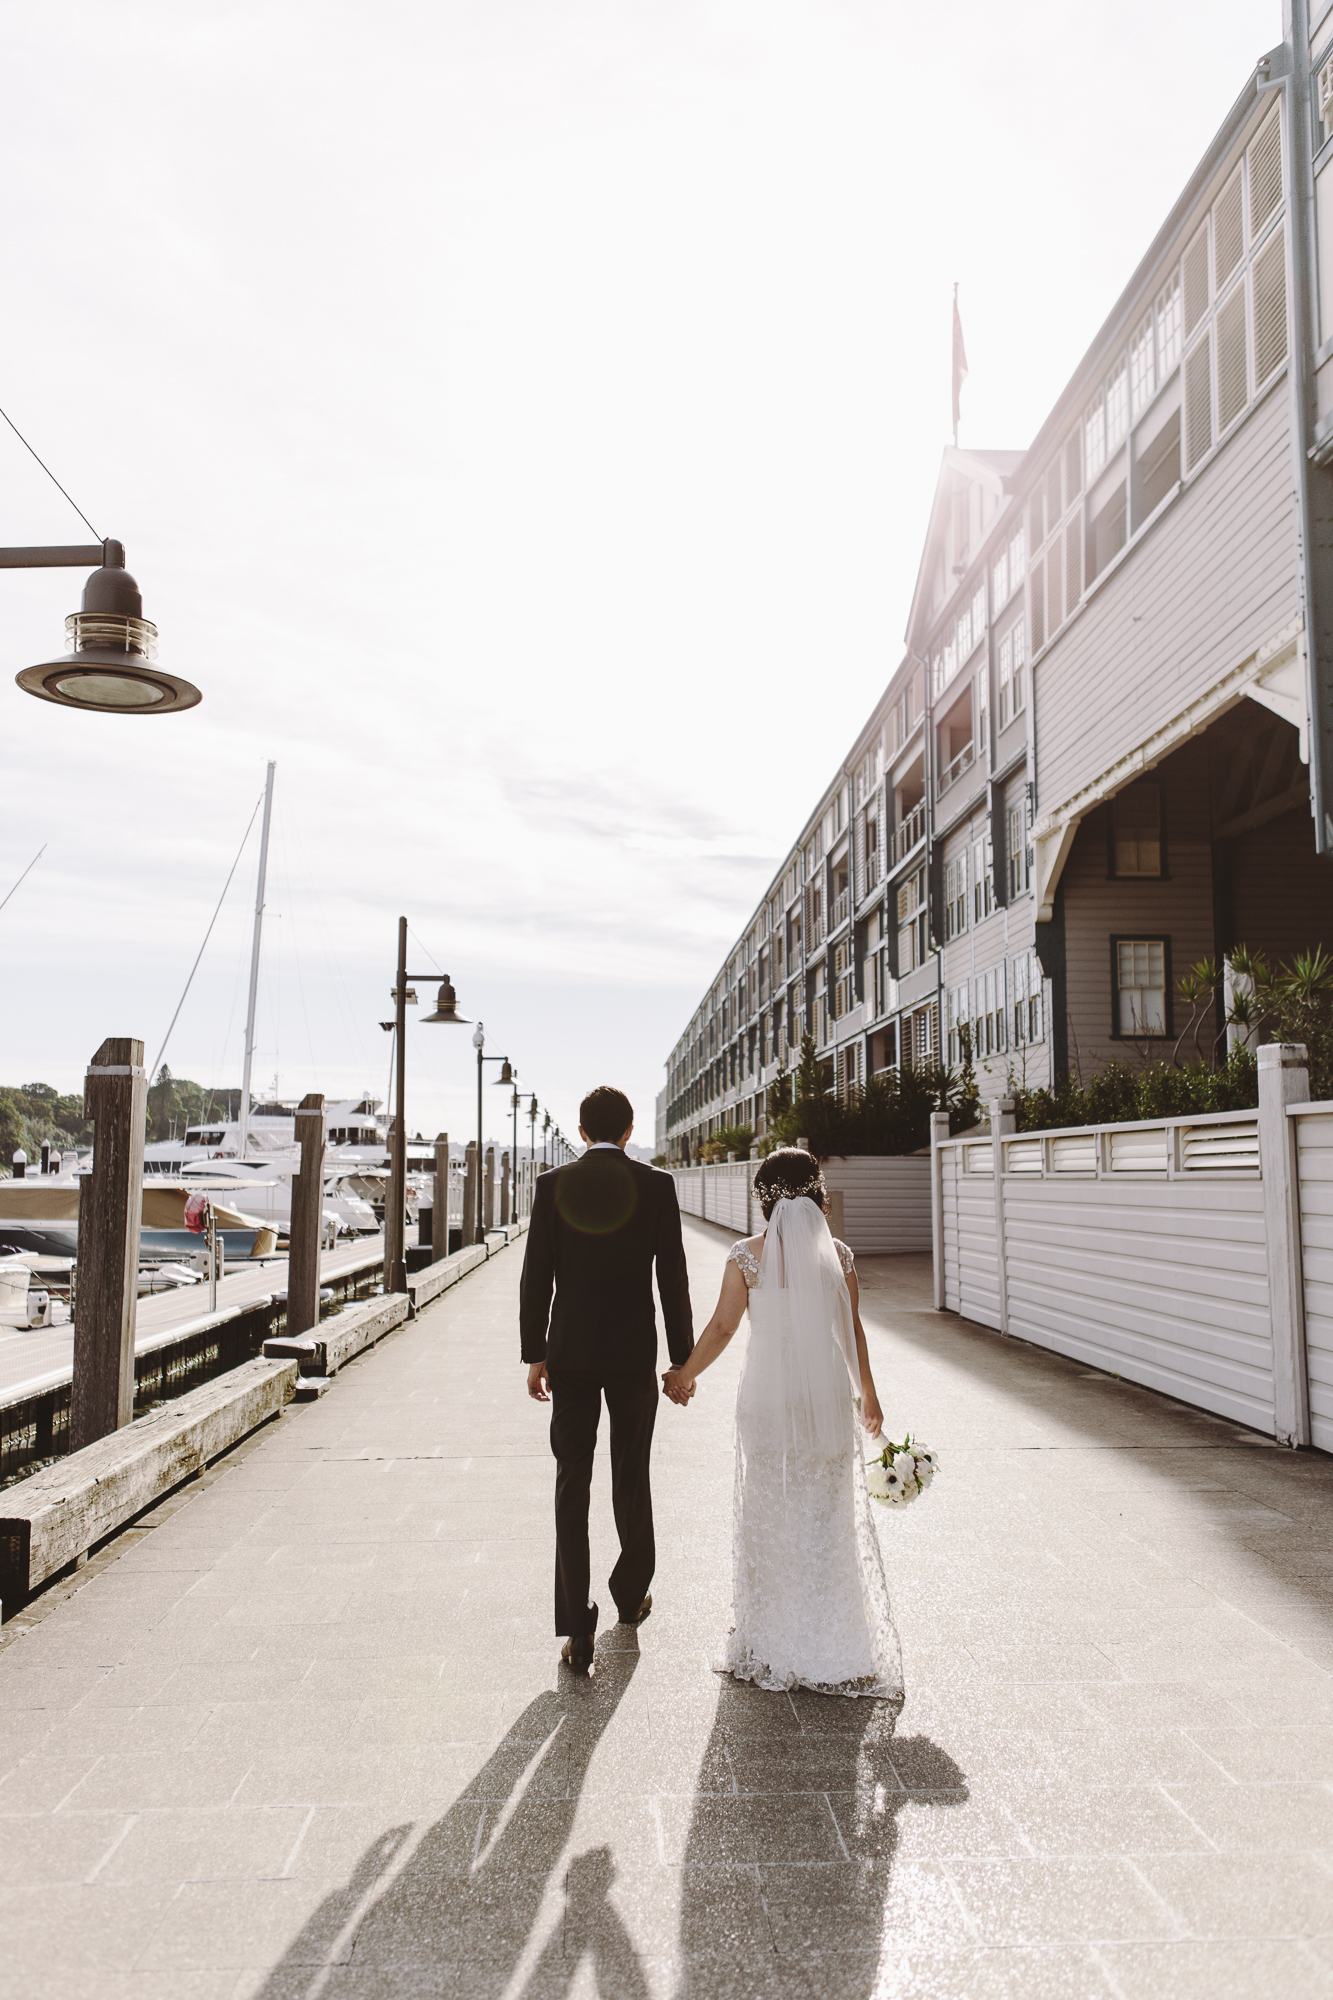 8 HOUR WEDDING - from $7000